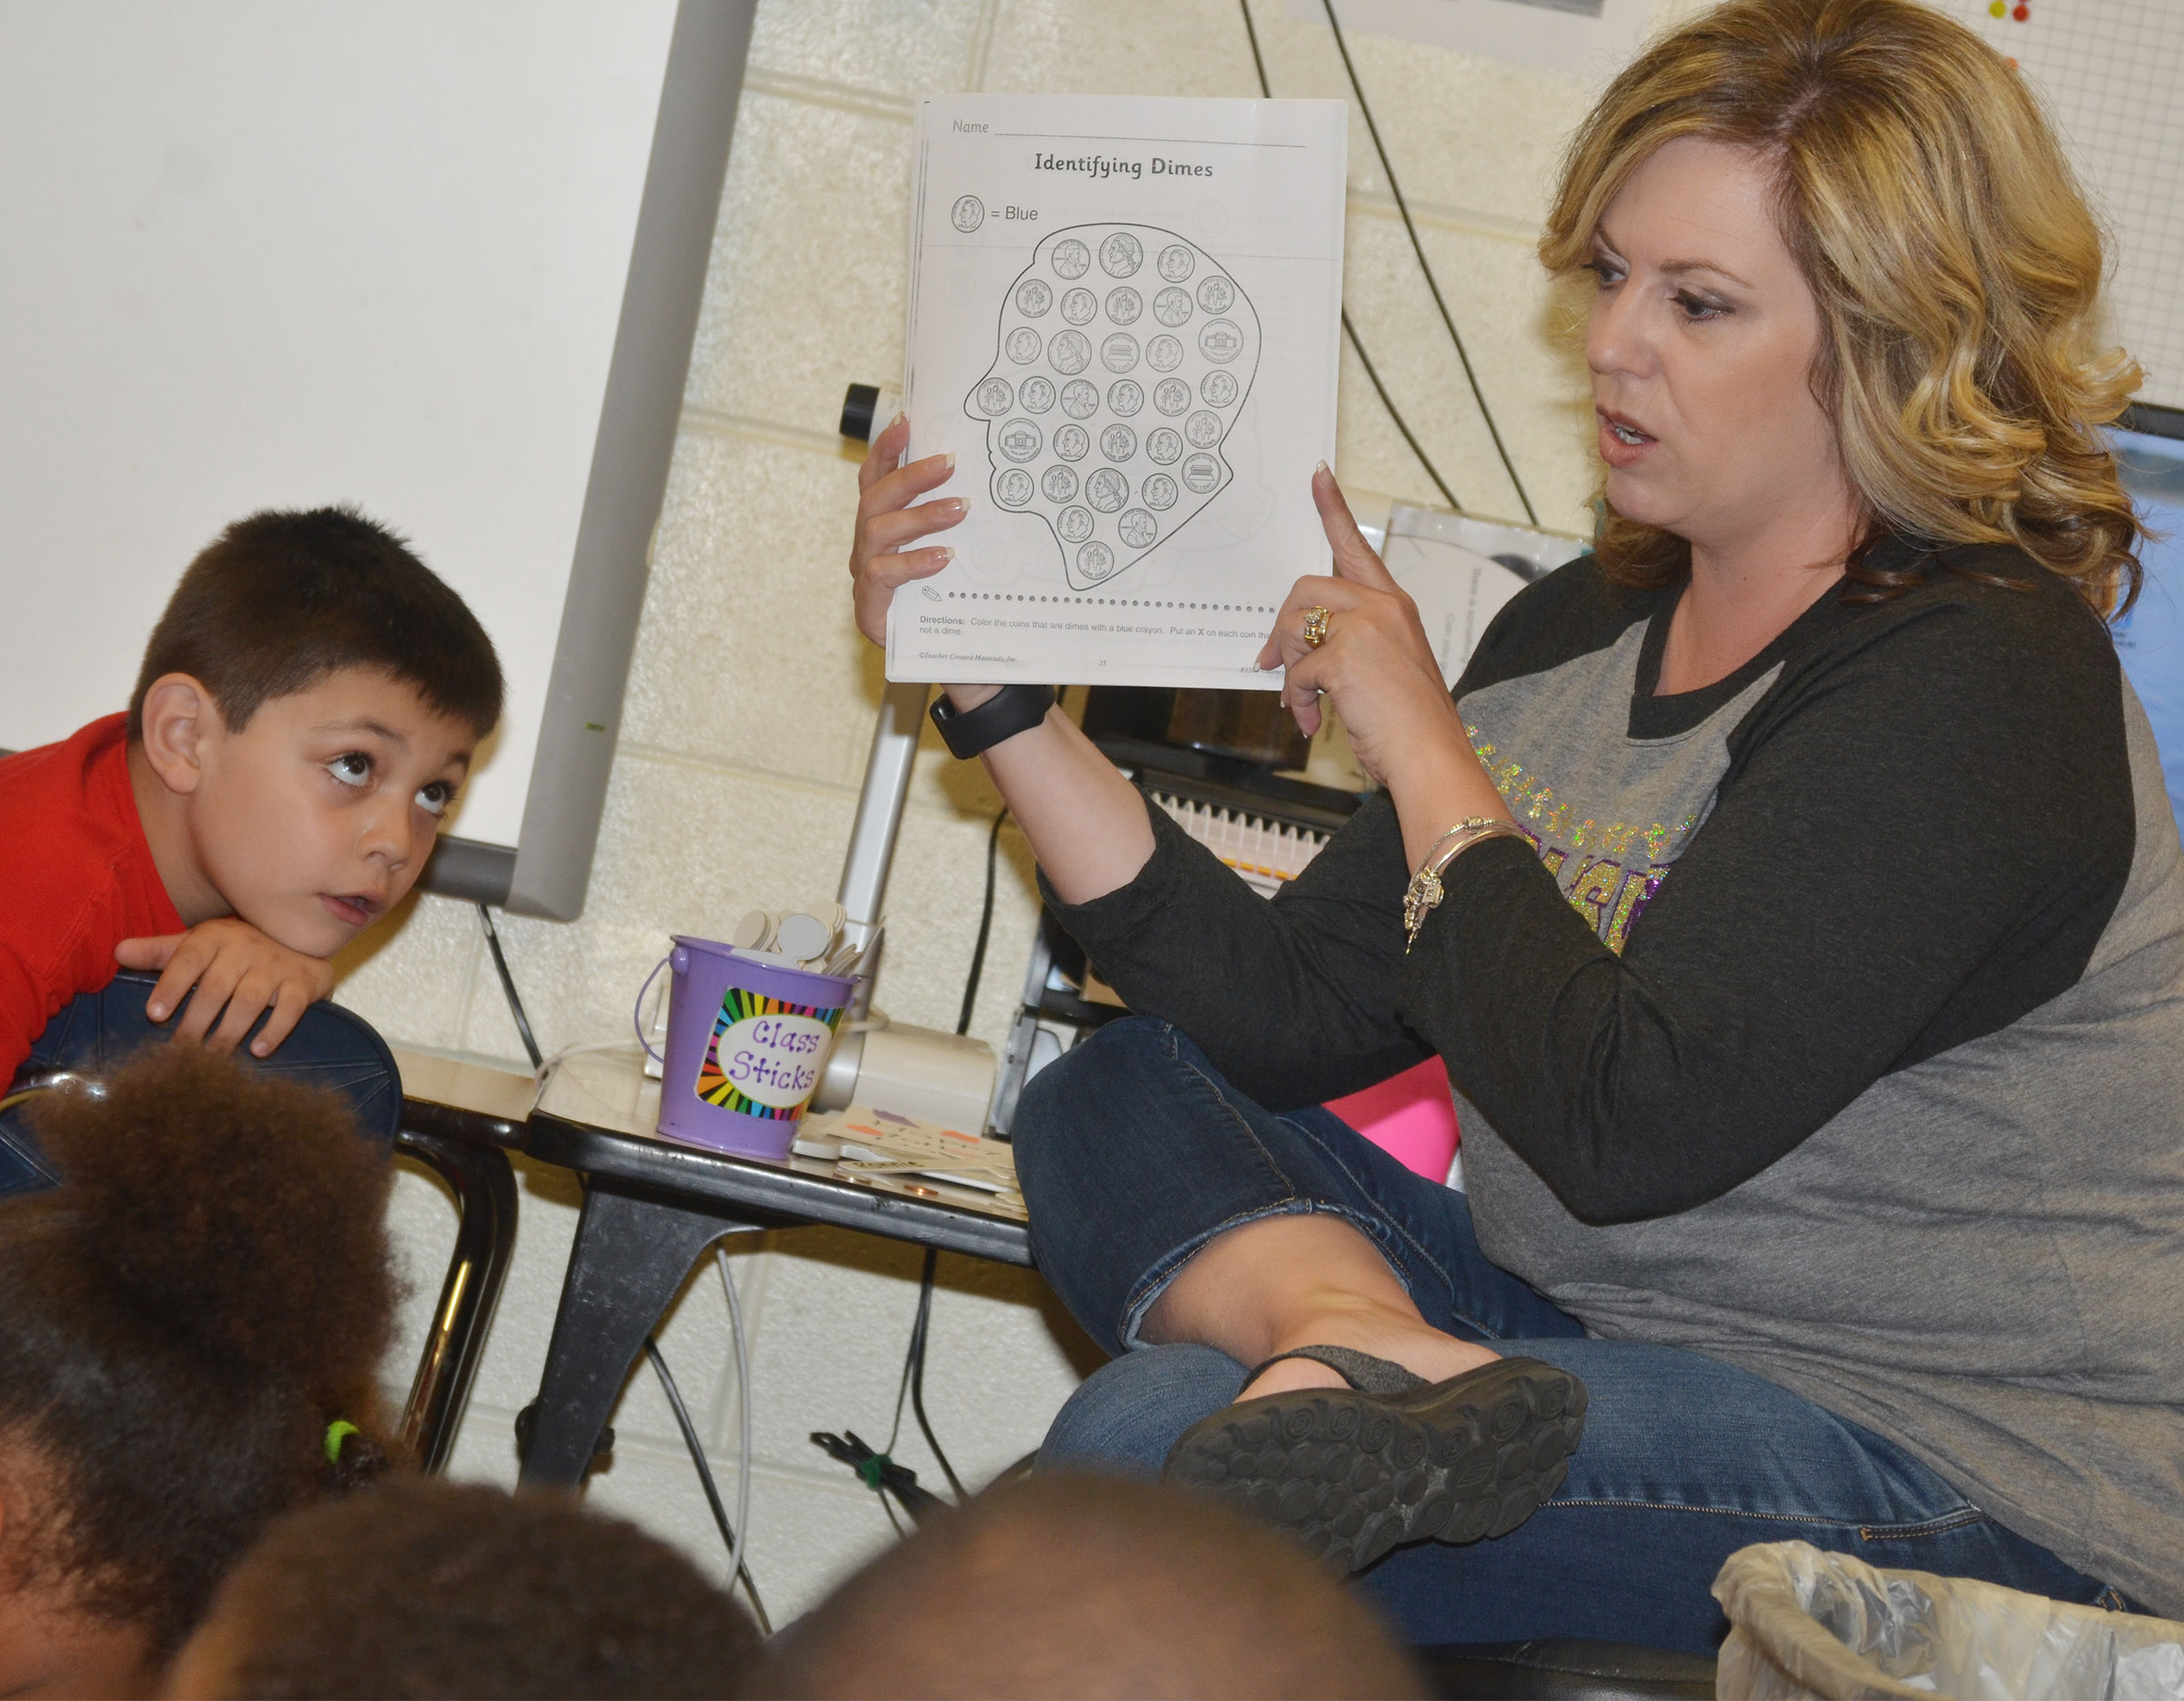 CES kindergarten teacher Nikki Price talks to her students about how they can identify dimes and nickels.